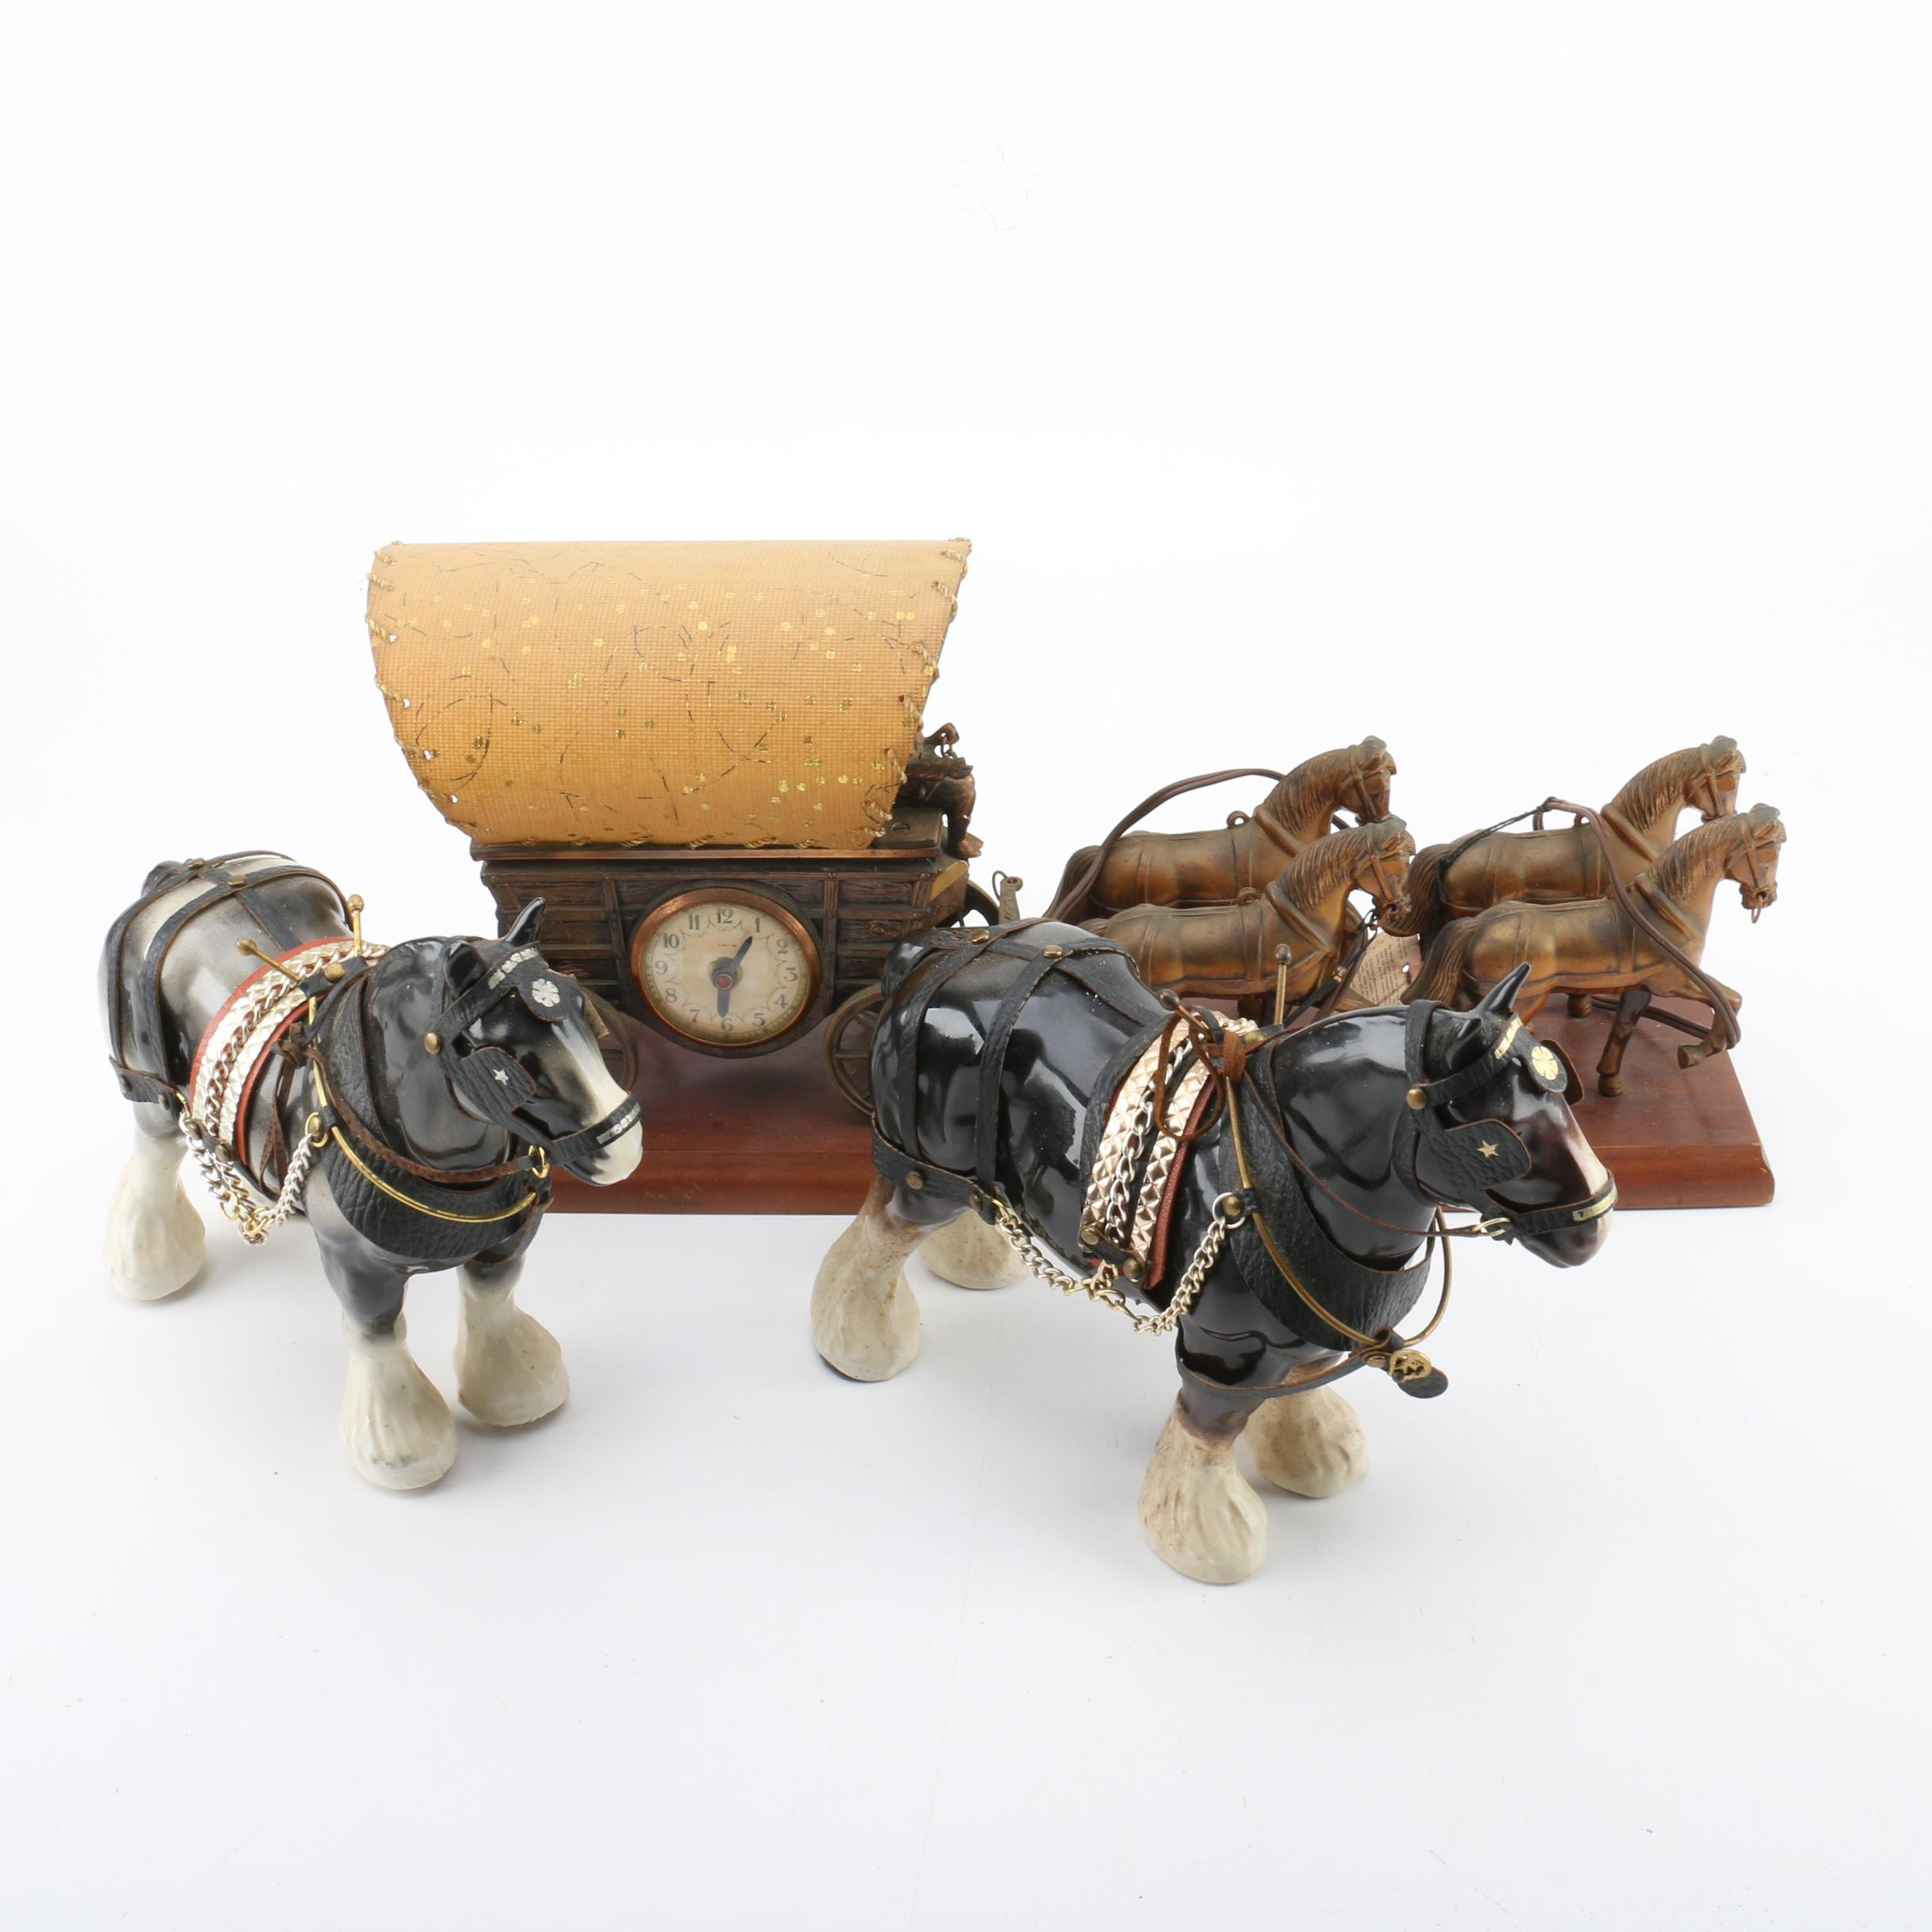 Horse & Carriage Mantle Clock and Horse Figurines